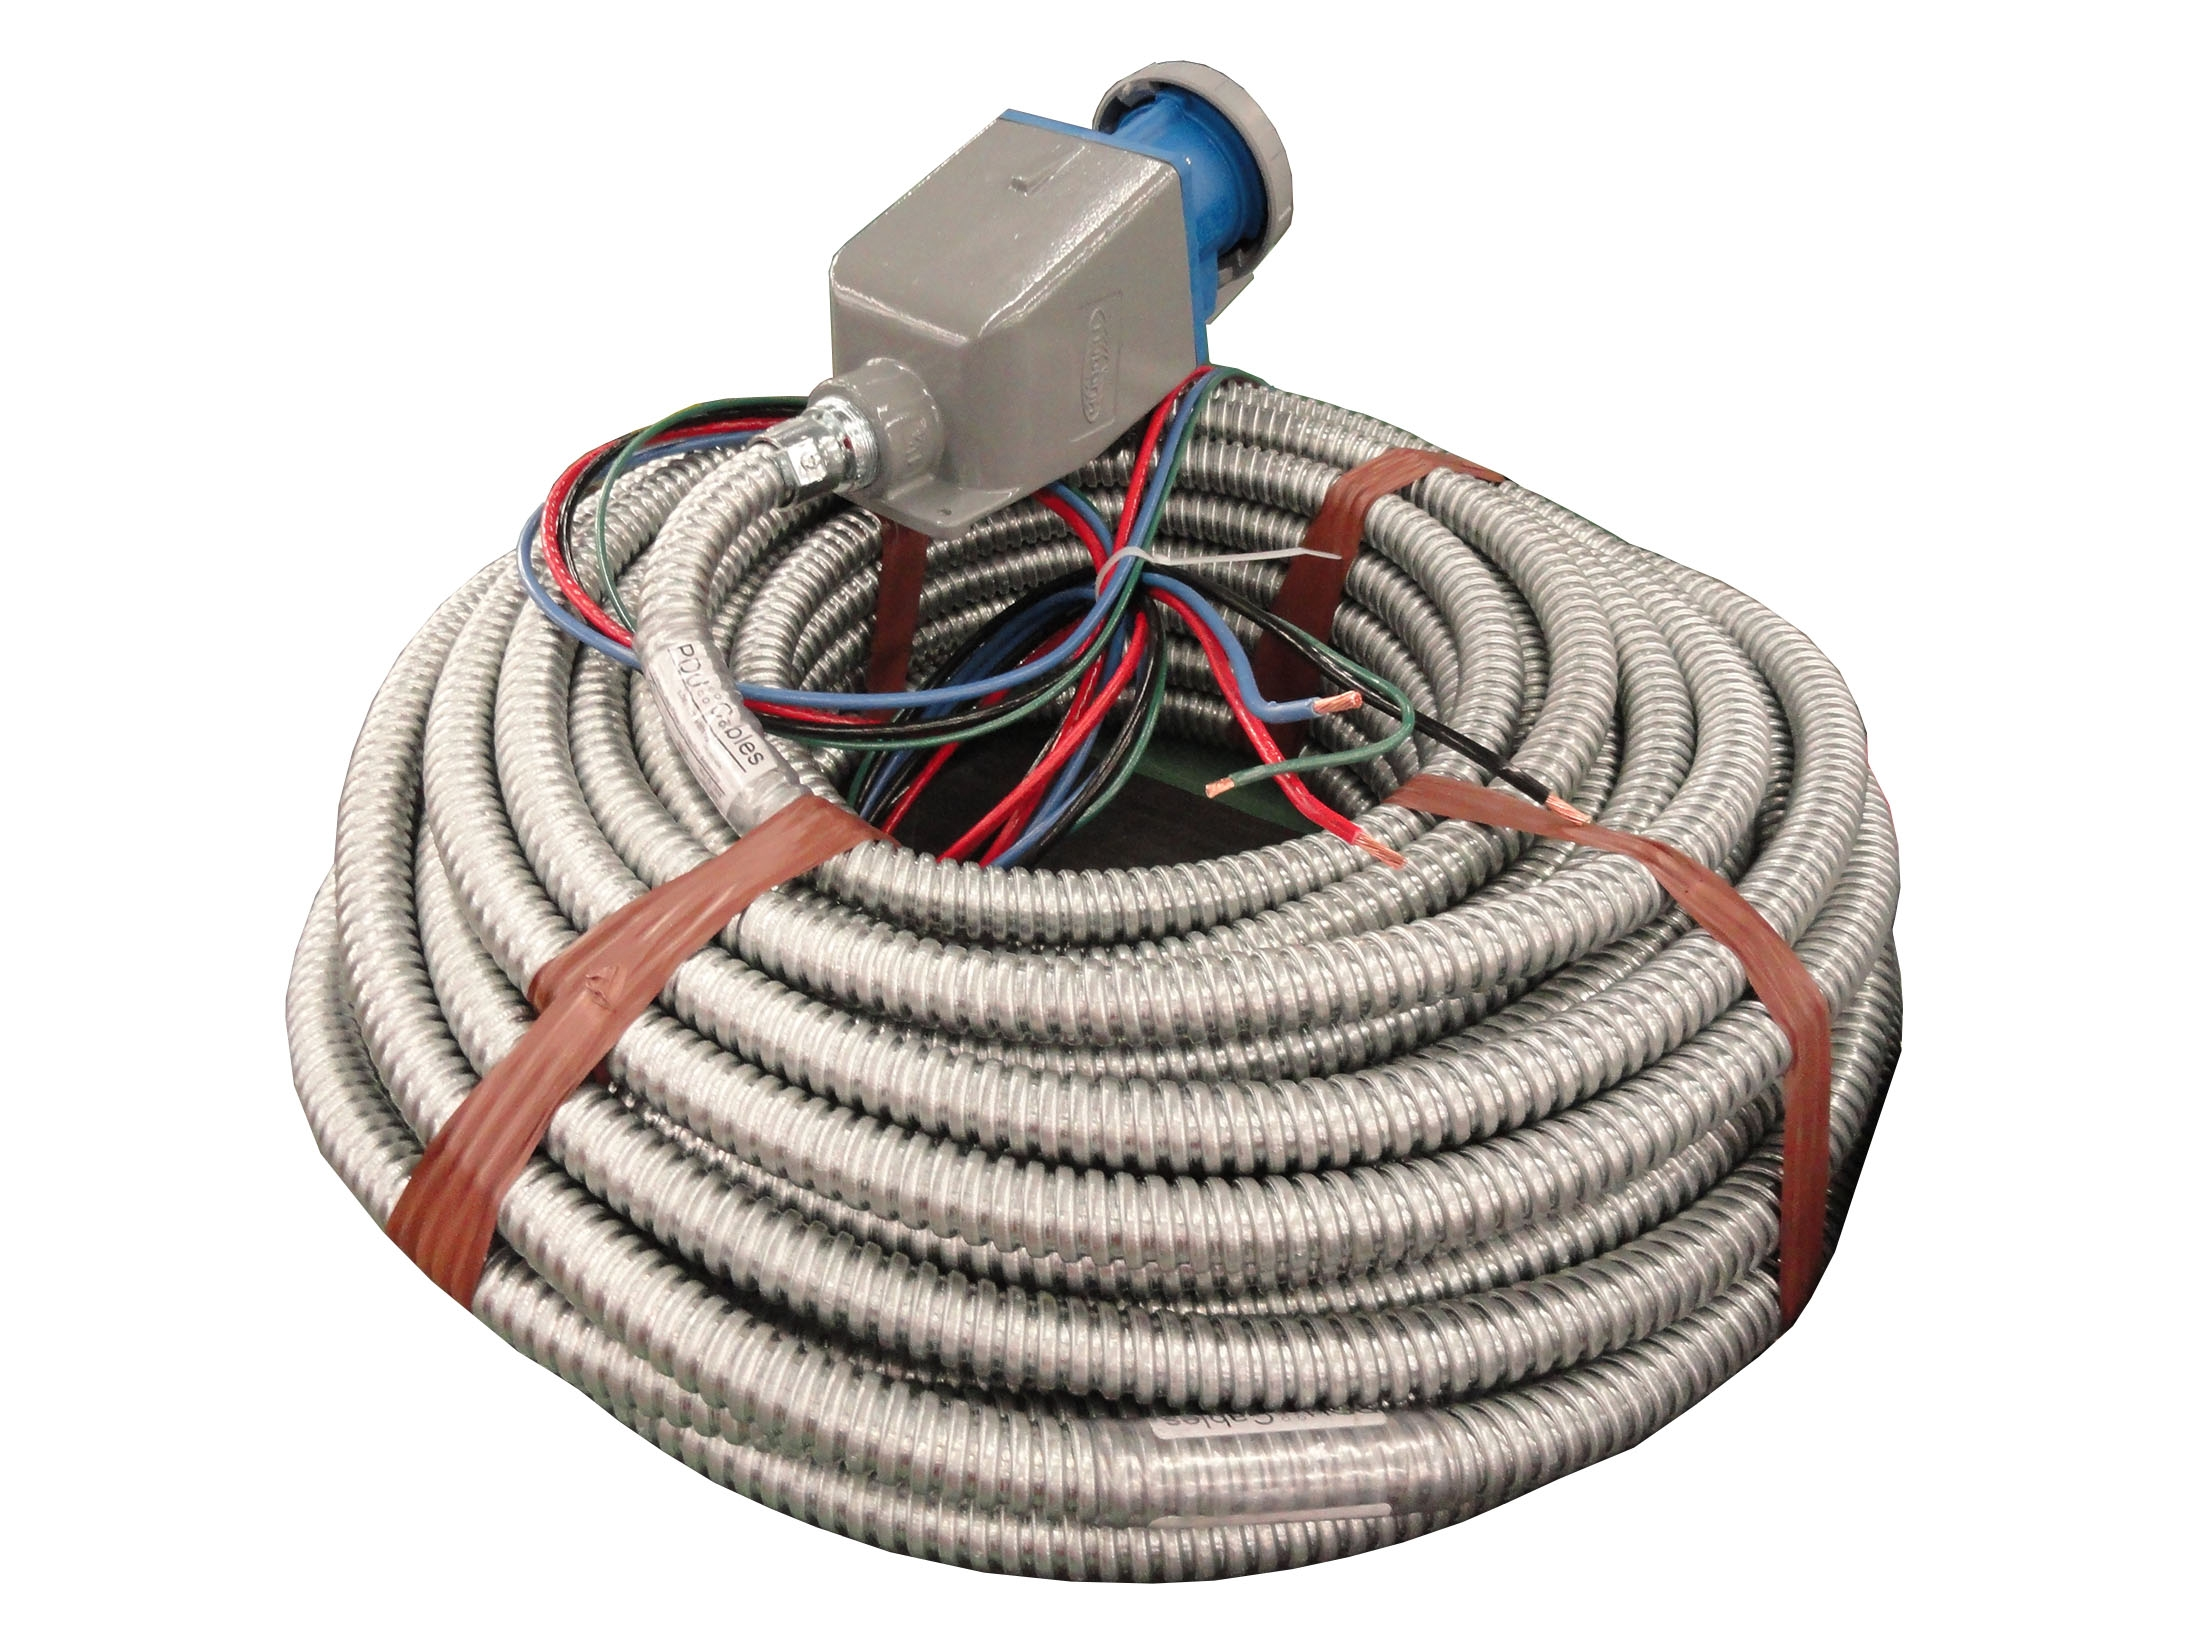 240 foot long Flexible Metal Conduit Cable Assembly with IEC309 device in a back box